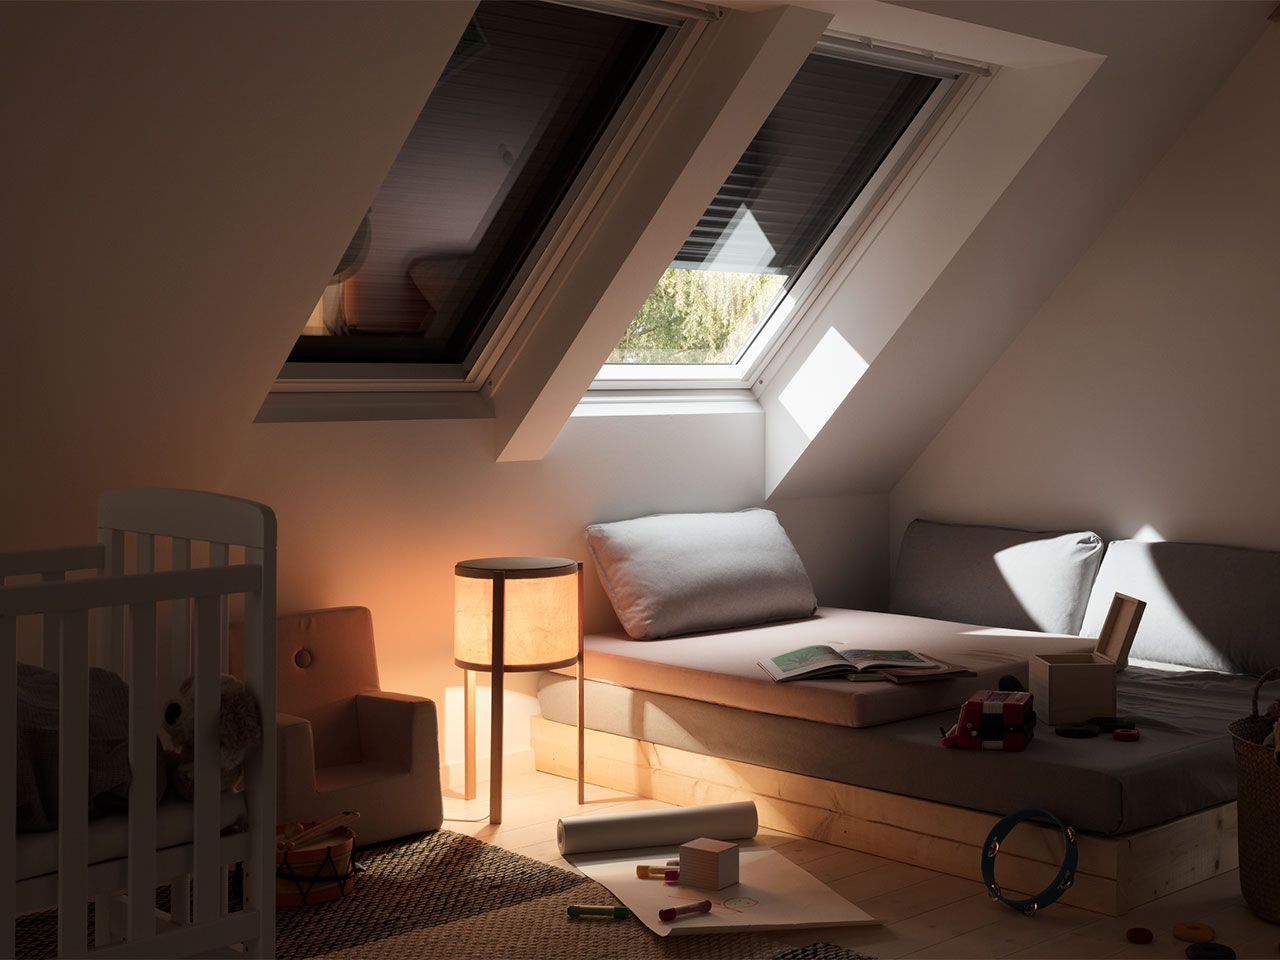 velux dachfenster rolladen ihr rundum schutz f rs ganze jahr. Black Bedroom Furniture Sets. Home Design Ideas